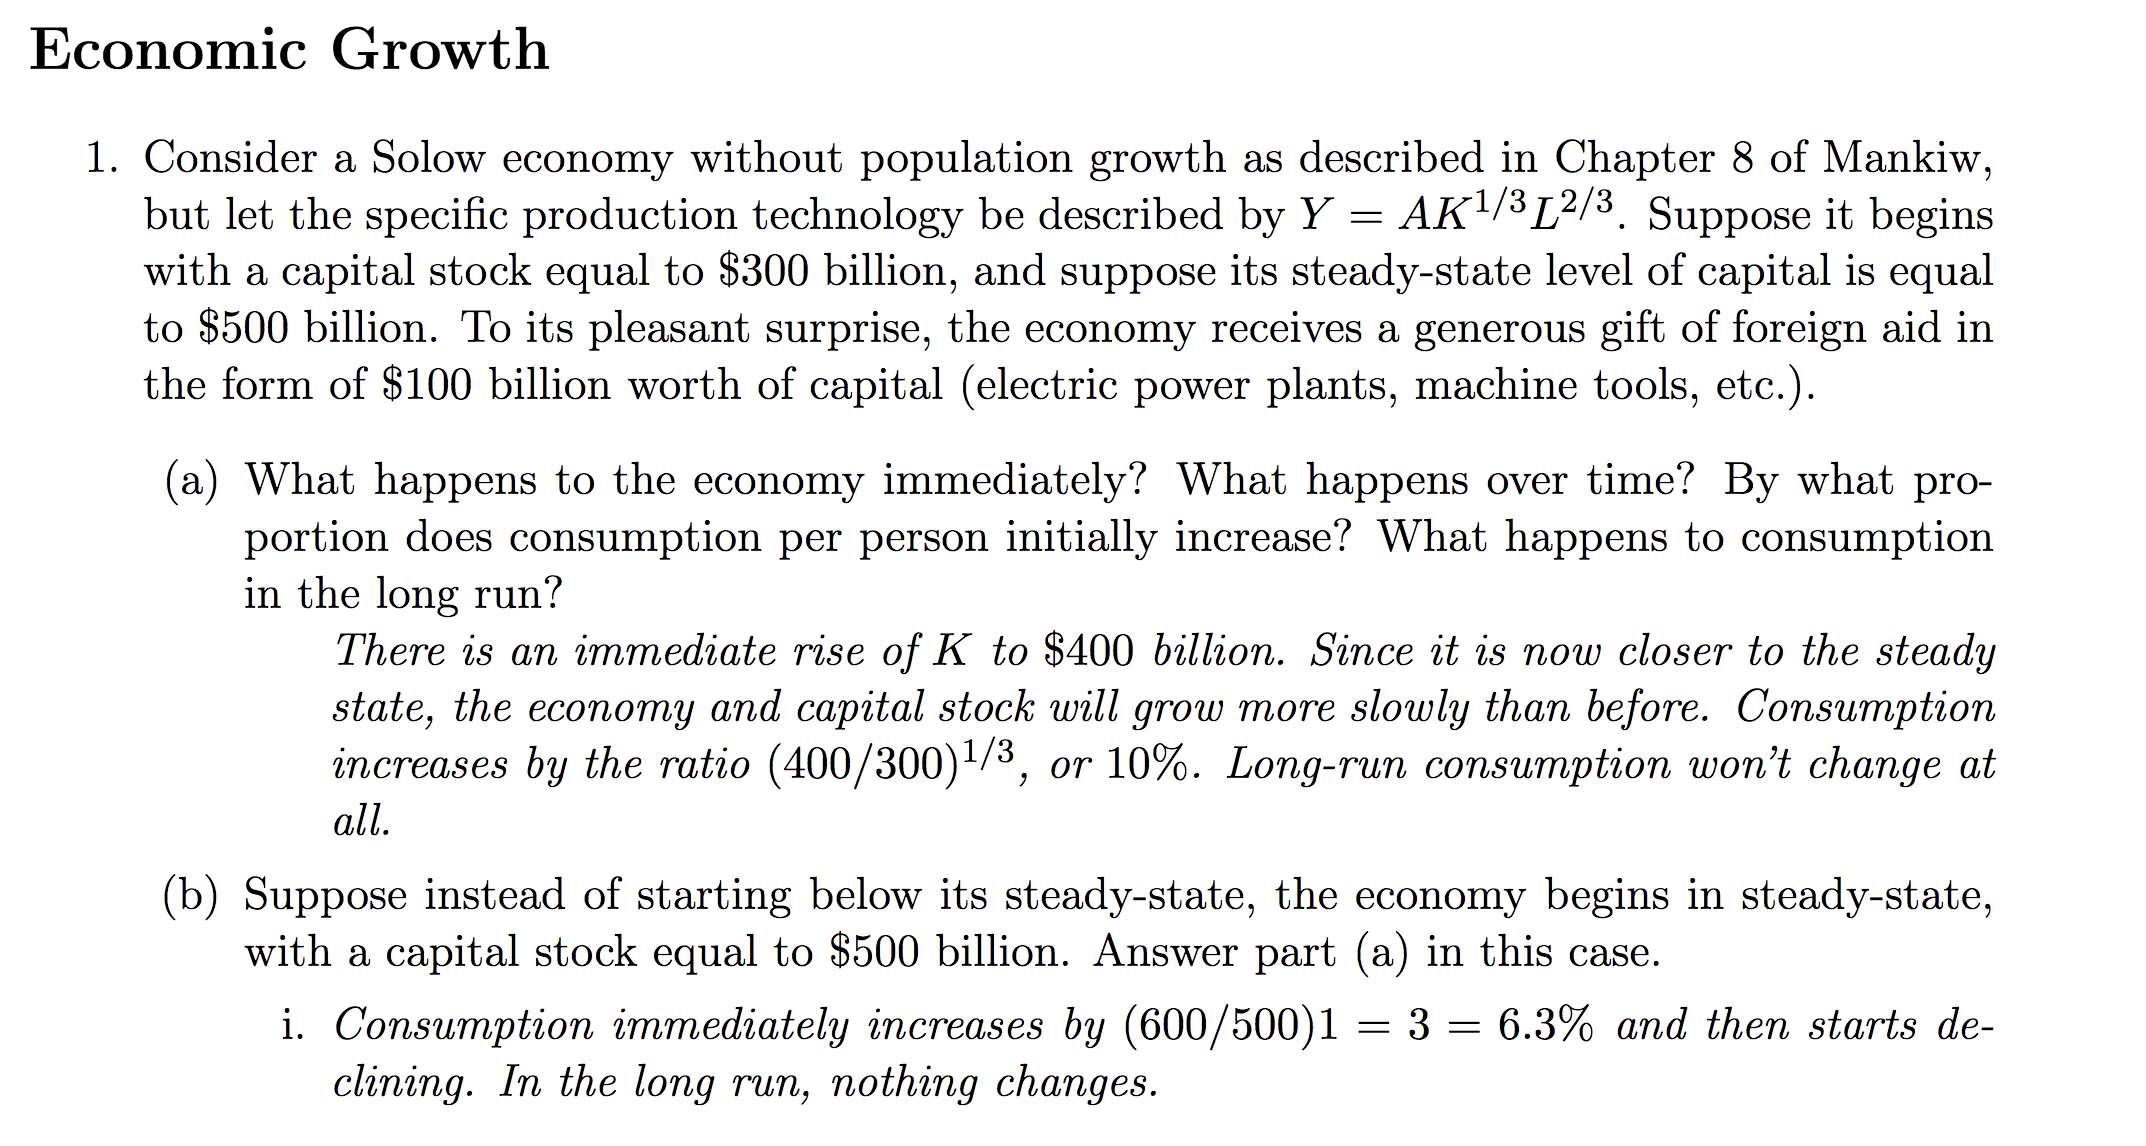 Economic Growth 1. Consider a Solow economy without population growth as described in Chapter 8 of Mankiw, but let the specific production technologv be described by YAK1/3[2/3. Suppose it begins with a capital stock equal to $300 billion, and suppose its steady-state level of capital is equal to $500 b the form of $100 billion worth of capital (electric power plants, machine tools, etc.) illion. To its pleasant surprise, the economy receives a generous gift of foreign aid in (a) What happens to the economy immediately? What happens over time? By what pro- ortion does consumption per person initially increase? What happens to consumption in the long run! There is an immediate rise of K to $400 billion. Since it is now closer to the steady state, the economy and capital stock will grow more slowly than before. Consumption increases by the ratio (400 /30011/3, or 10%. Long-run consumption won't change at all (b) Suppose instead of starting below its steady-state, the economy begins in steady-state, with a capital stock equal to $500 billion. Answer part (a) in this case . Consumption immediately increases by 1600/ 5001 = 3 = 6.3% and then starts de- clining. In the long run, nothing changes